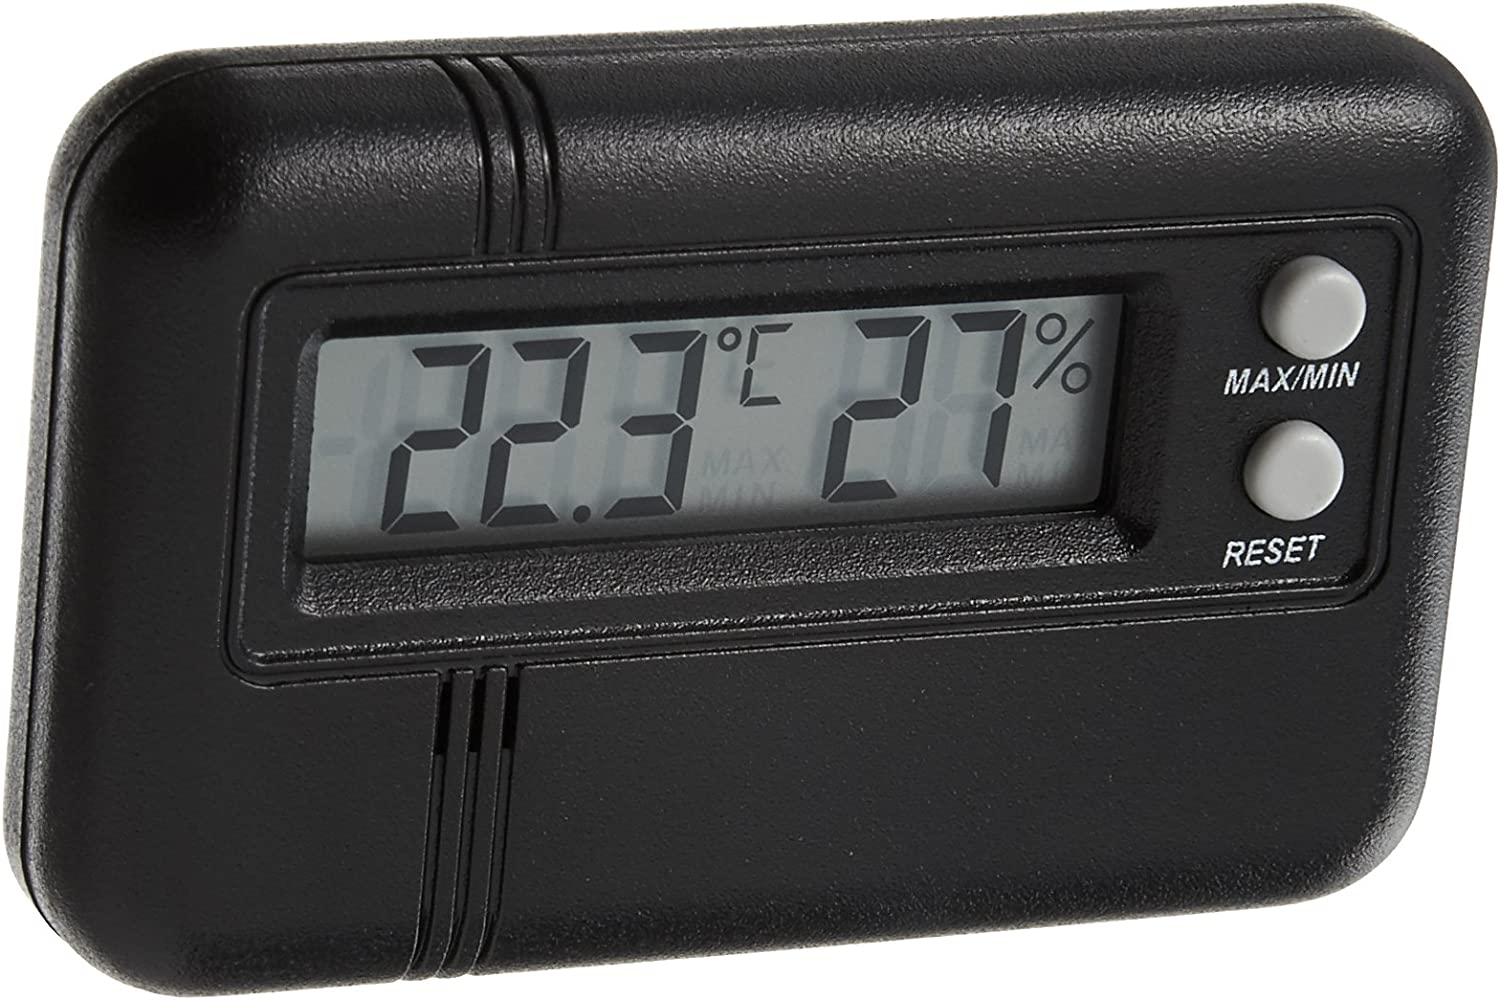 1 X Mini Digital Thermometer Hygrometer Temperature Humidity Gauge 71S6v968JsL